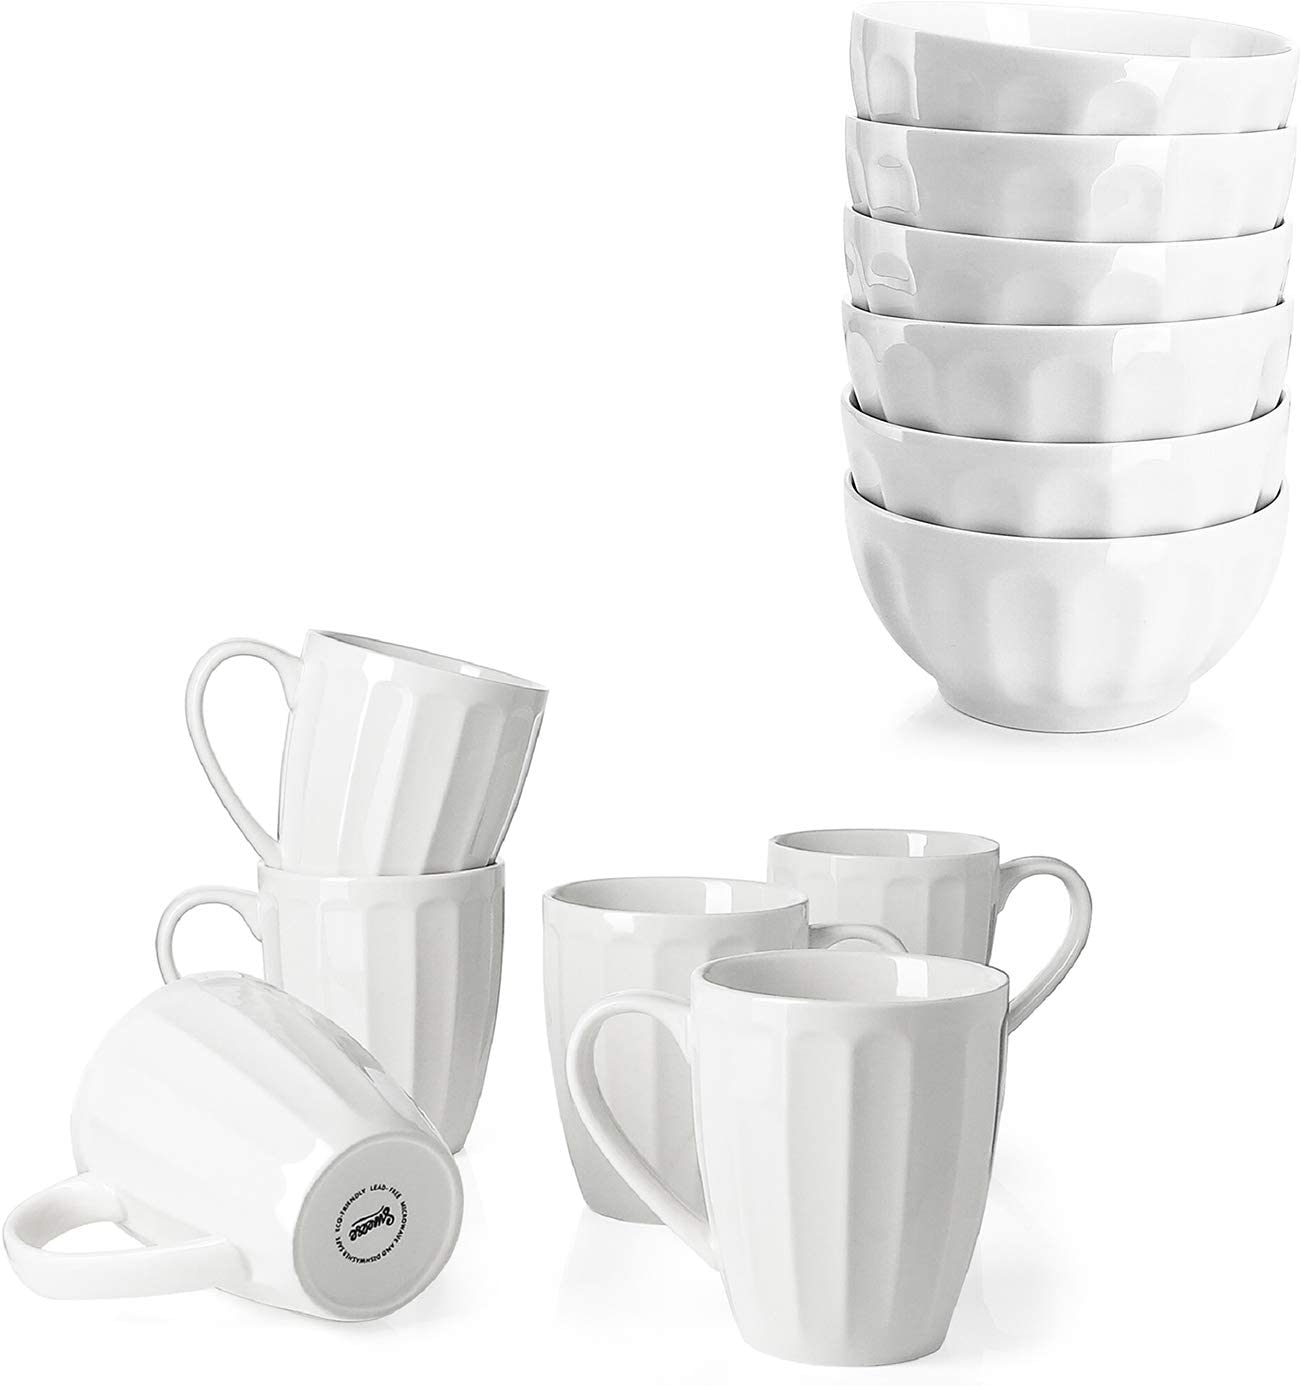 Sweese Porcelain Fluted Coffee Max 52% OFF Mugs - and Cereal Max 84% OFF 14 Ounce